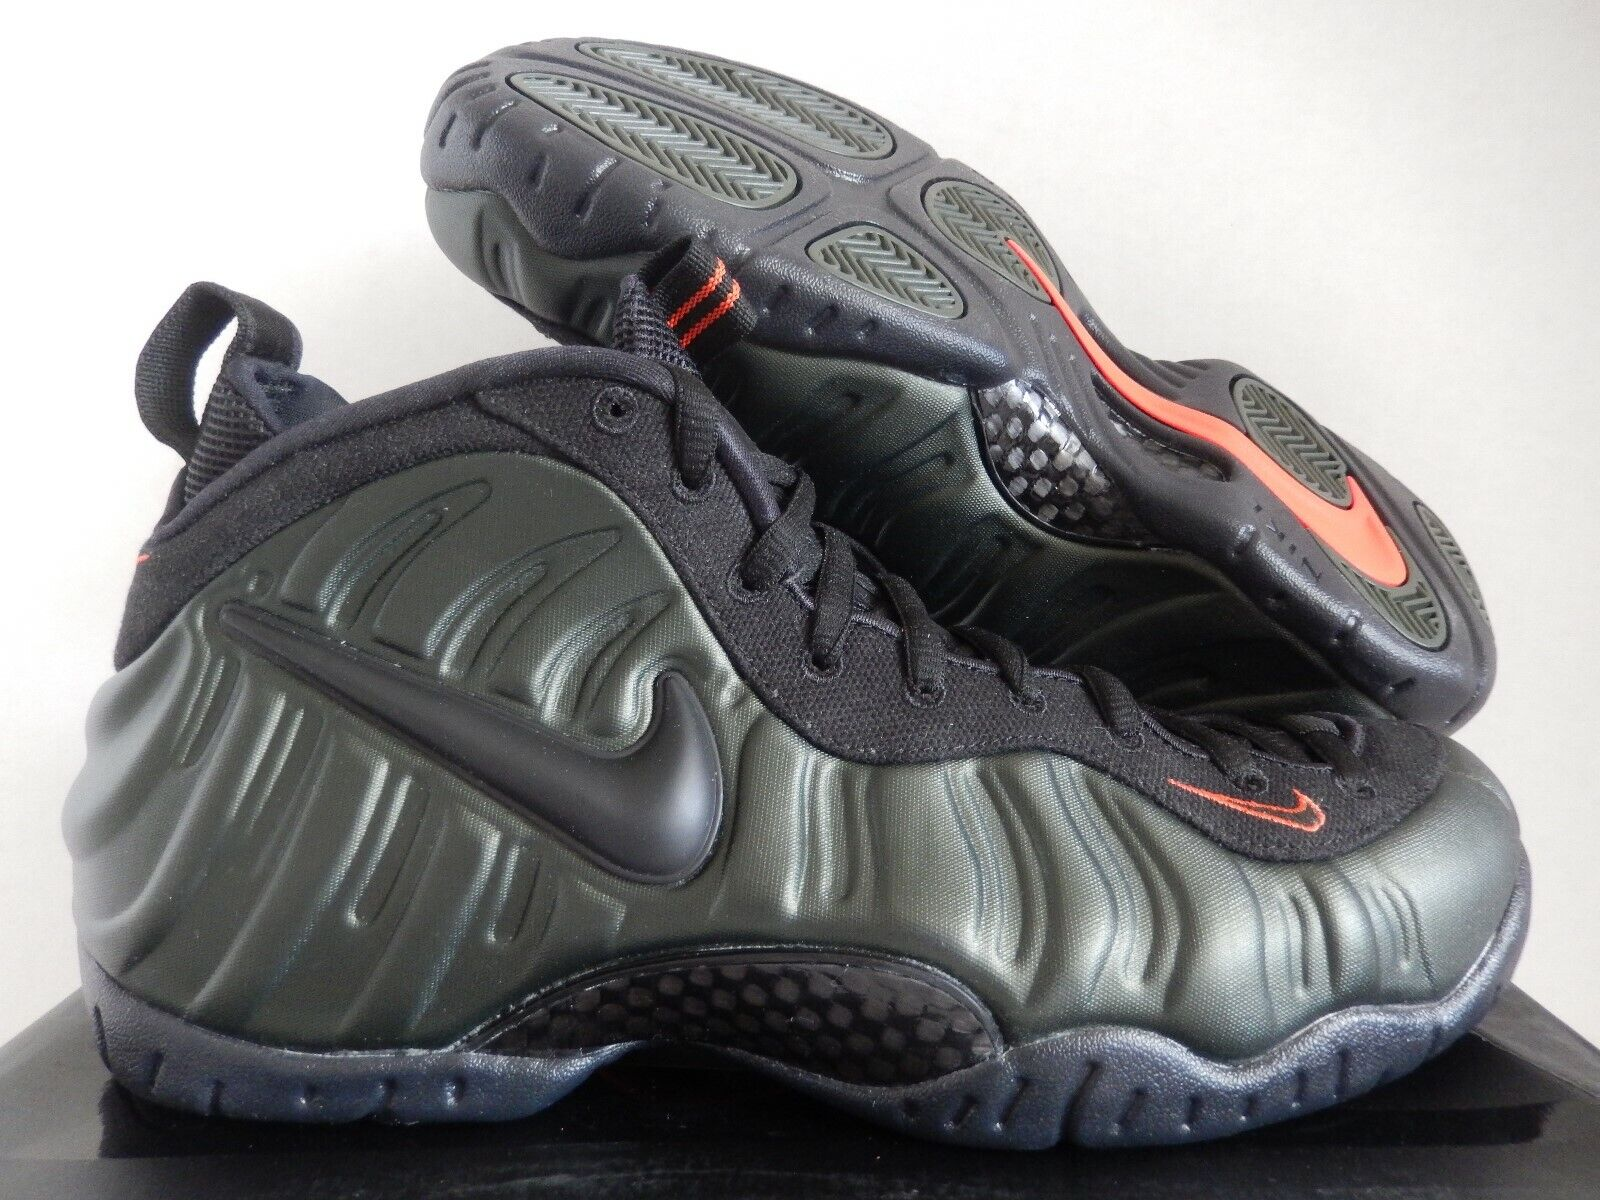 NIKE AIR FOAMPOSITE PRO SEQUOIA GREEN-BLACK-TEAM orange SZ 10.5 [624041-304]